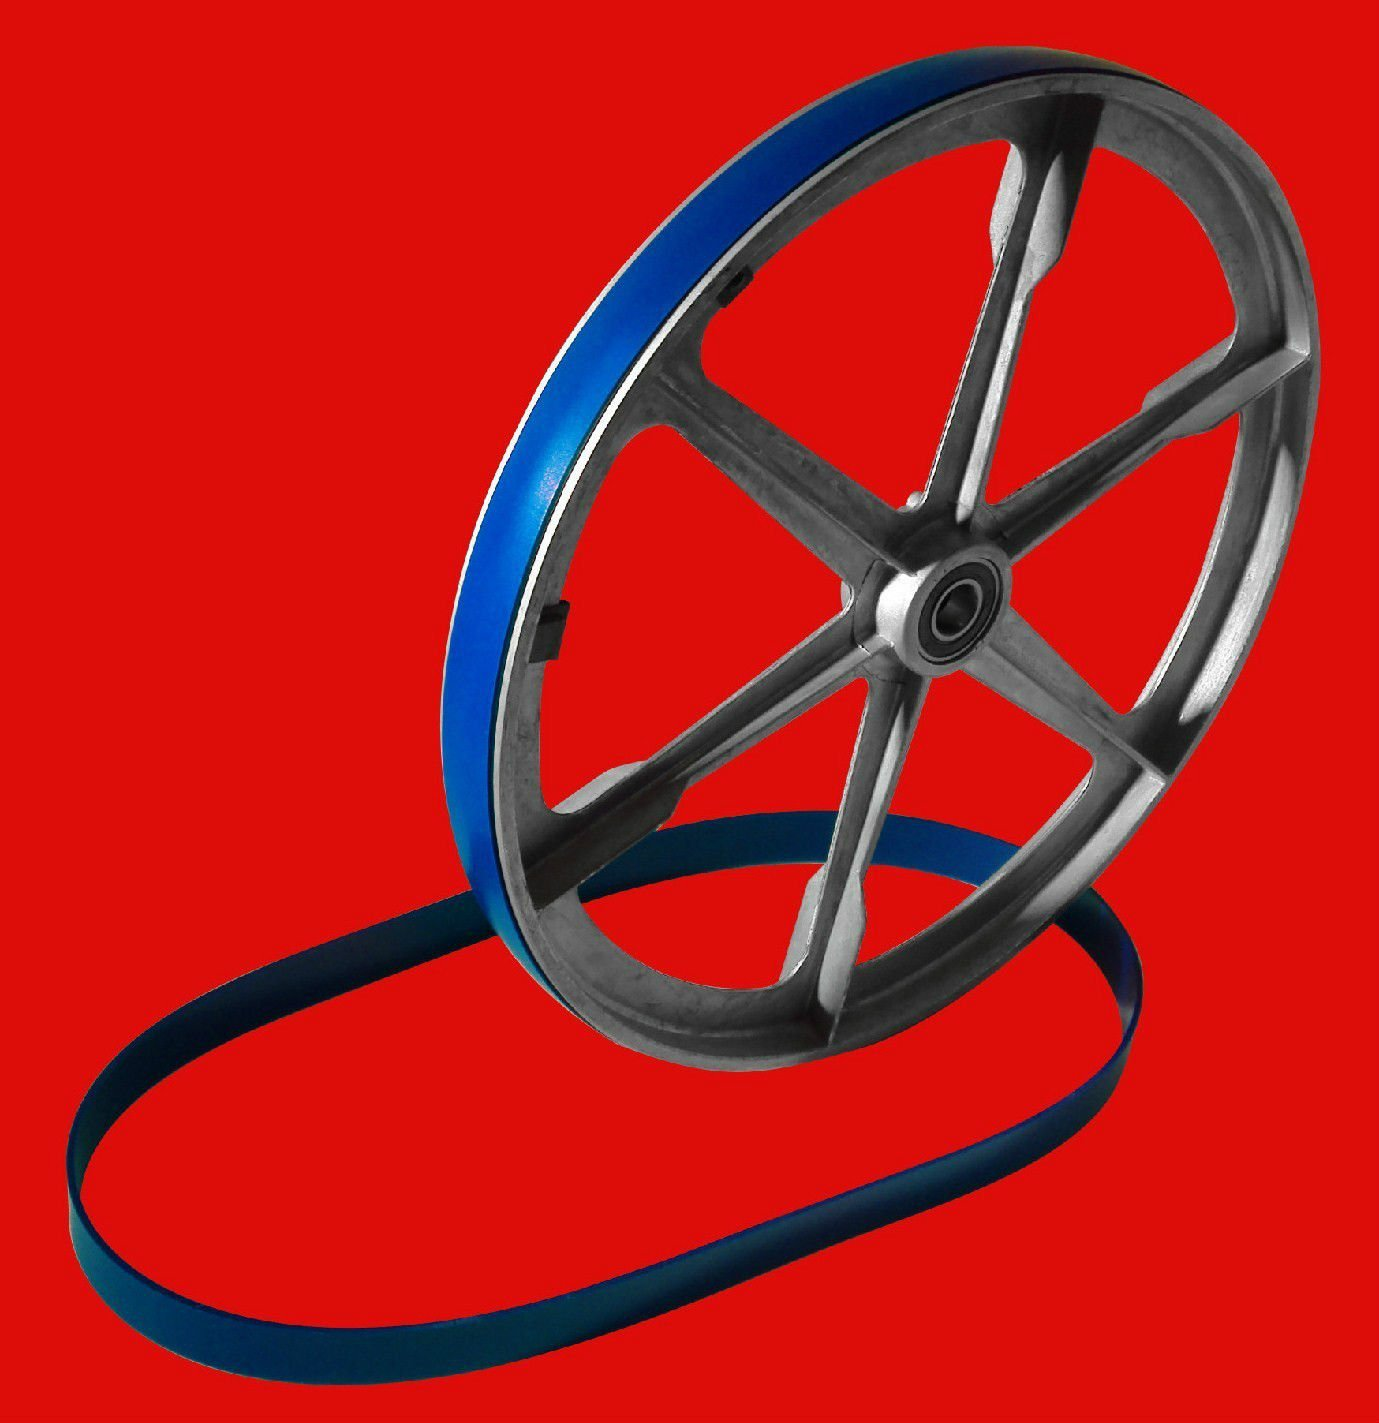 2 BLUE MAX ULTRA .125 BAND SAW TIRES FOR SUMMIT 14 INCH BAND SAW  NEW 2 TIRE SET